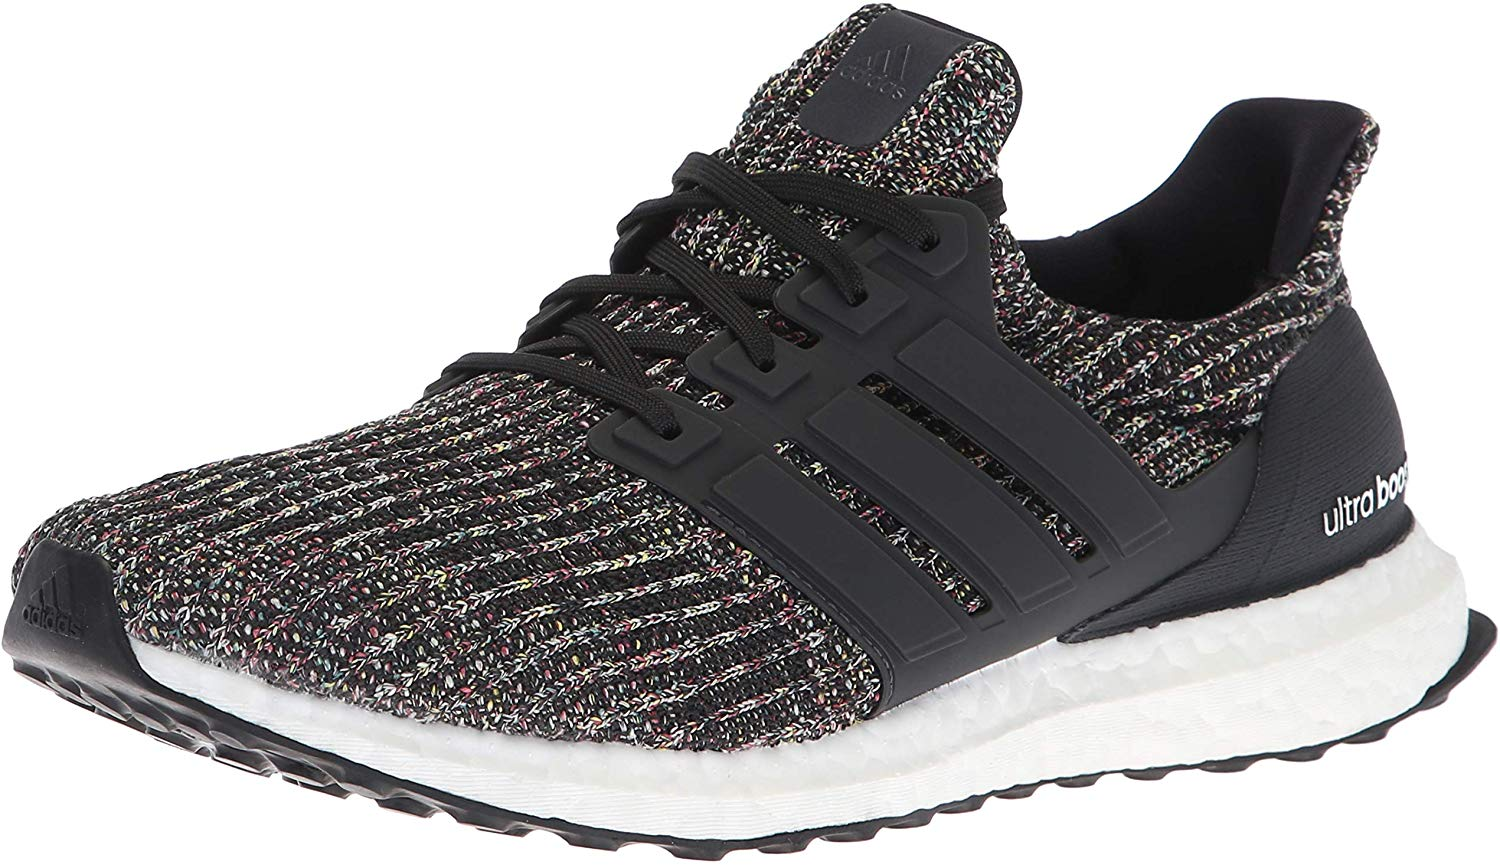 adidas Mens Ultraboost Running Shoe - Black/Carbon/Ash Silver - Size 11.5